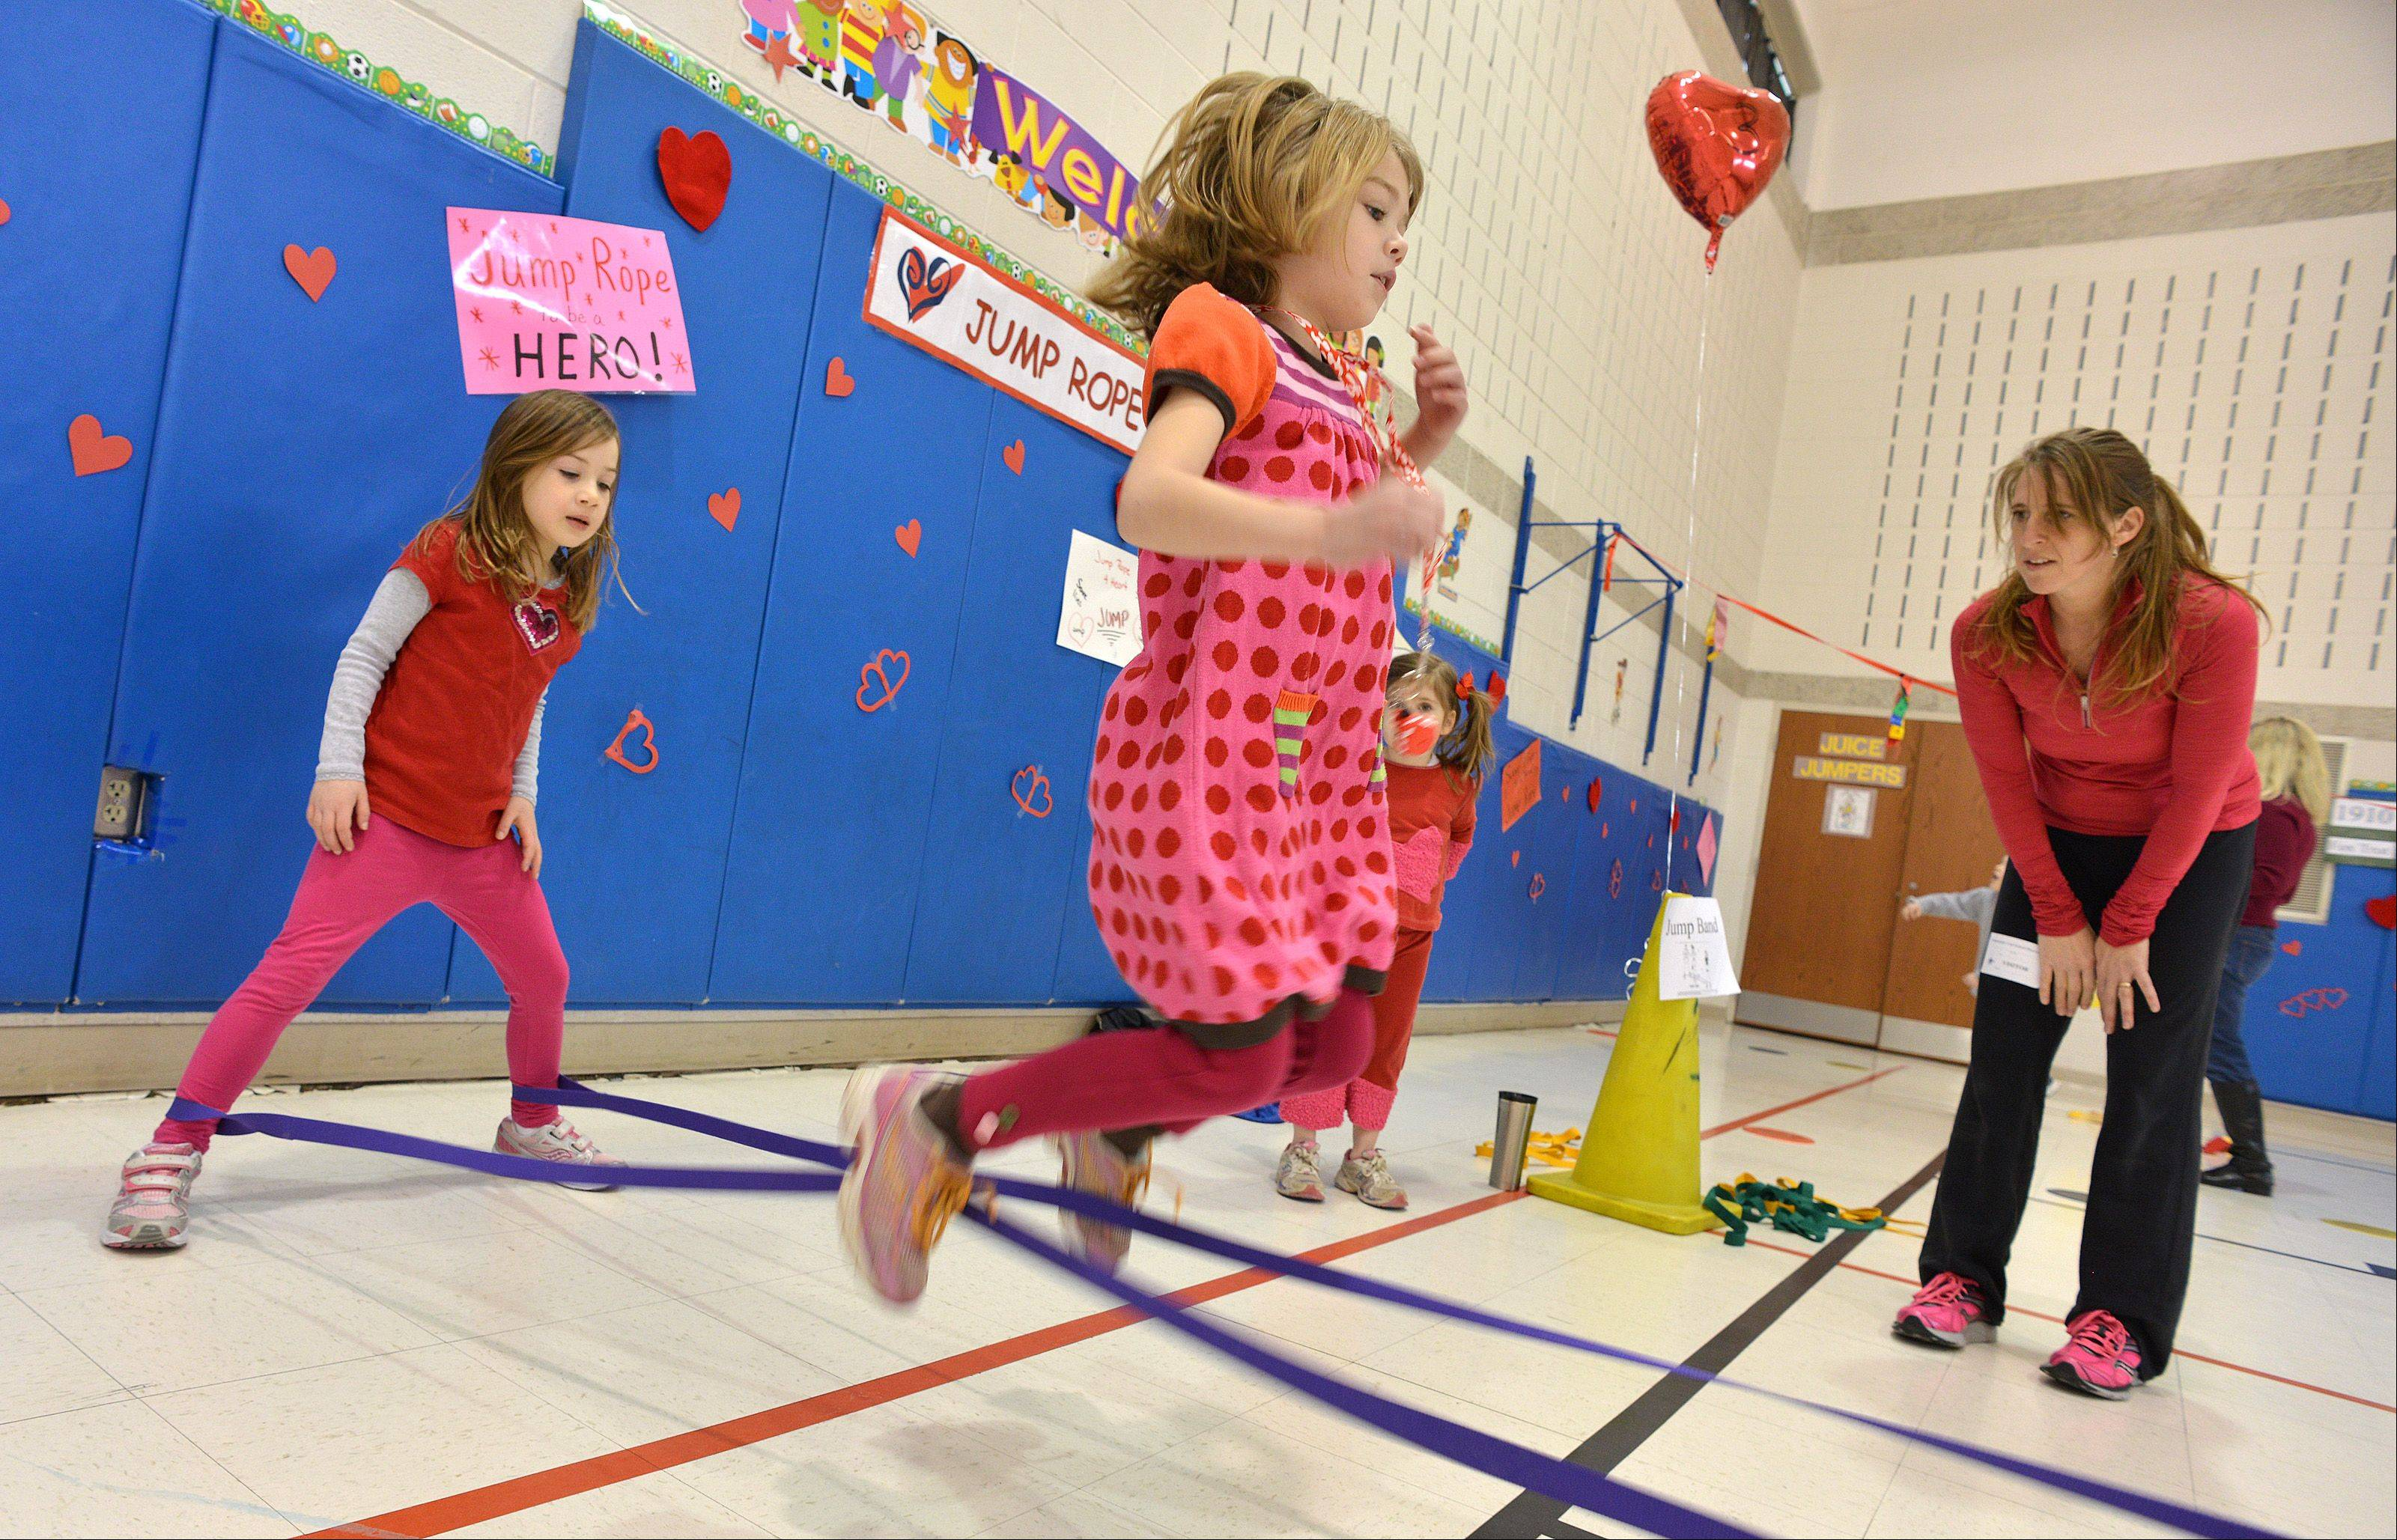 Avery Palmore, center, hops through a jump band, while Cecilia Marello, left, holds the band, and parent volunteer Theresa Ferguson watches. Students at Longfellow School in Wheaton were jumping around Friday in gym classes to raise money for the American Heart Association�s Jump Rope for Heart program.